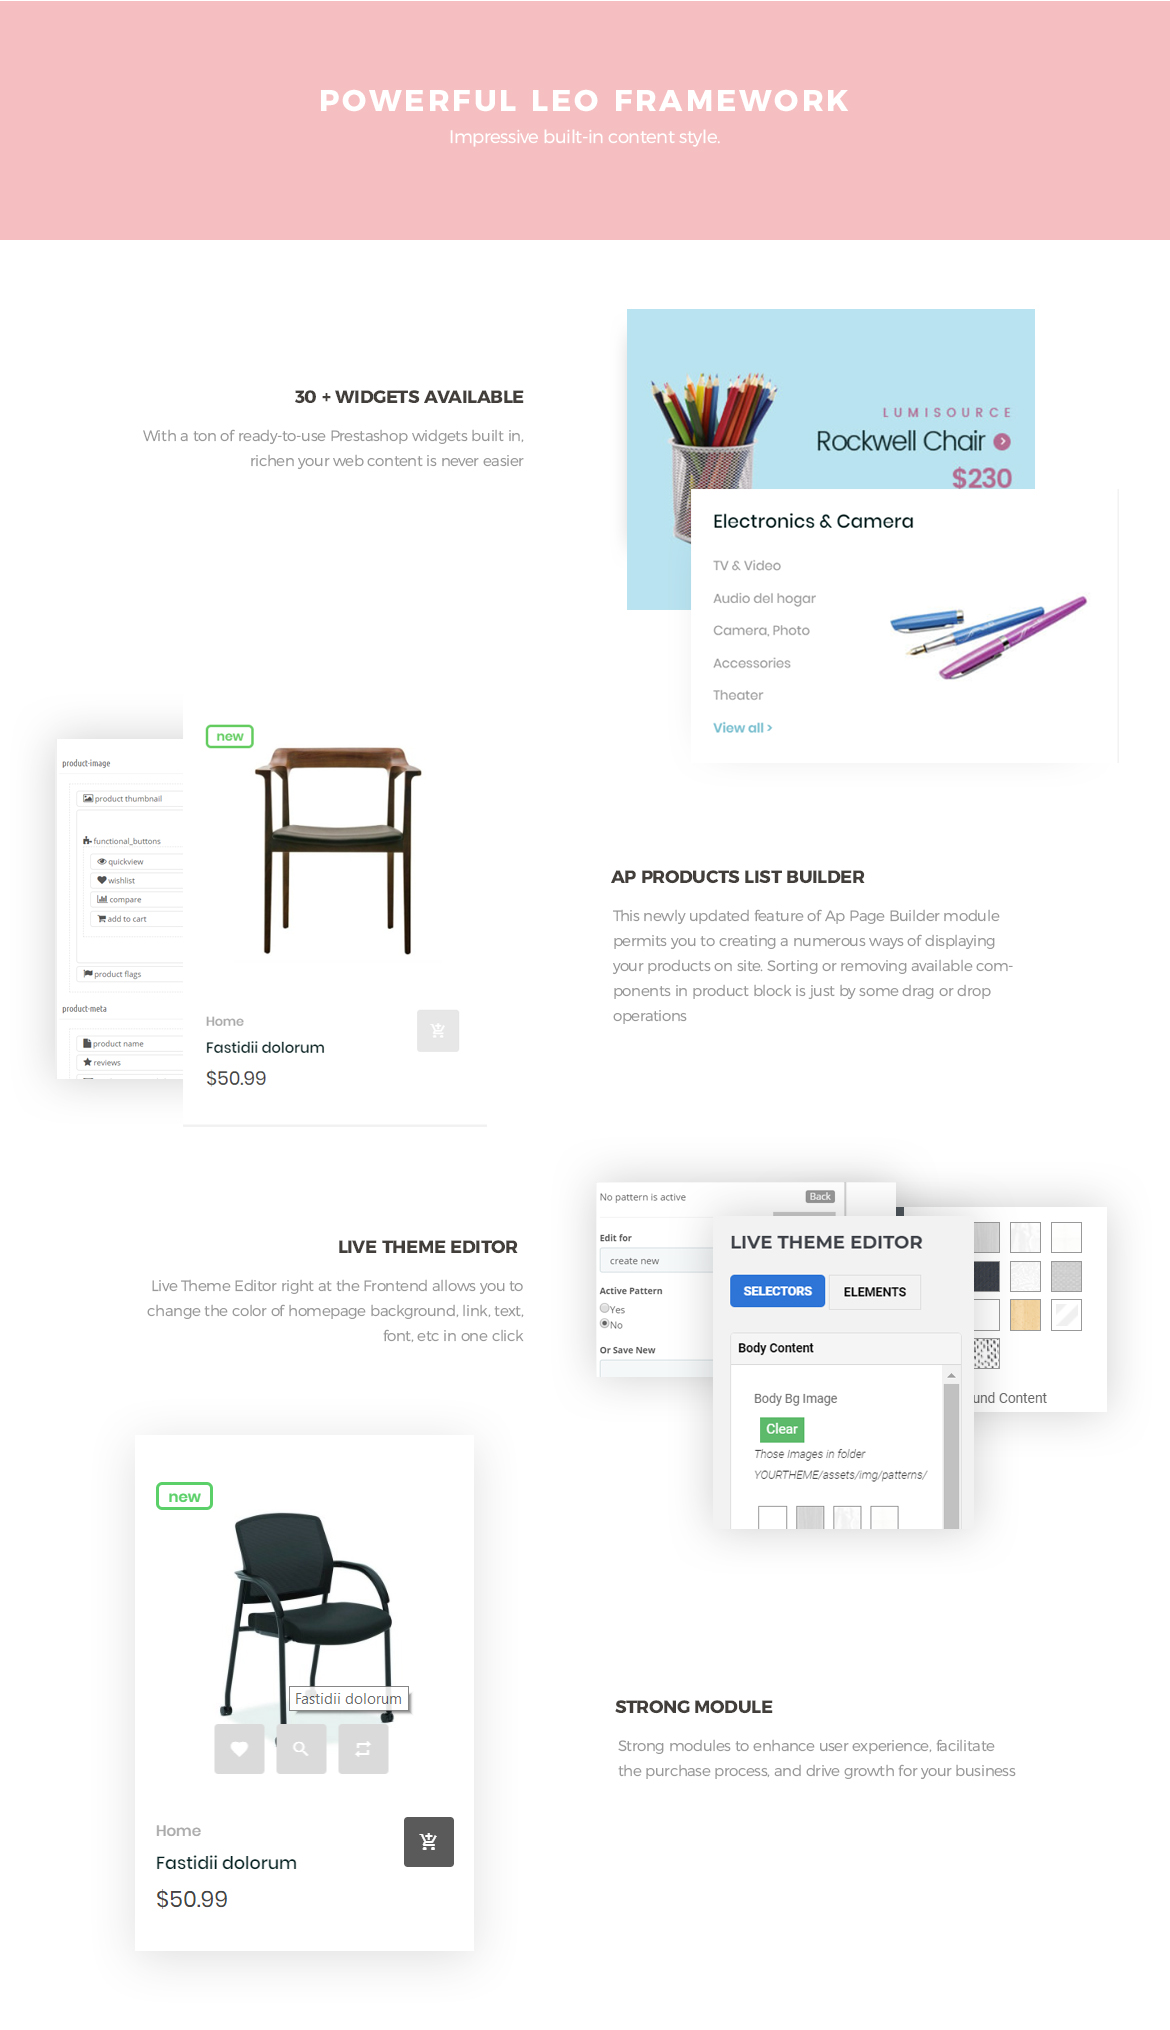 Powerful Leo Framework - Leo Neons - Stationery Prestashop theme